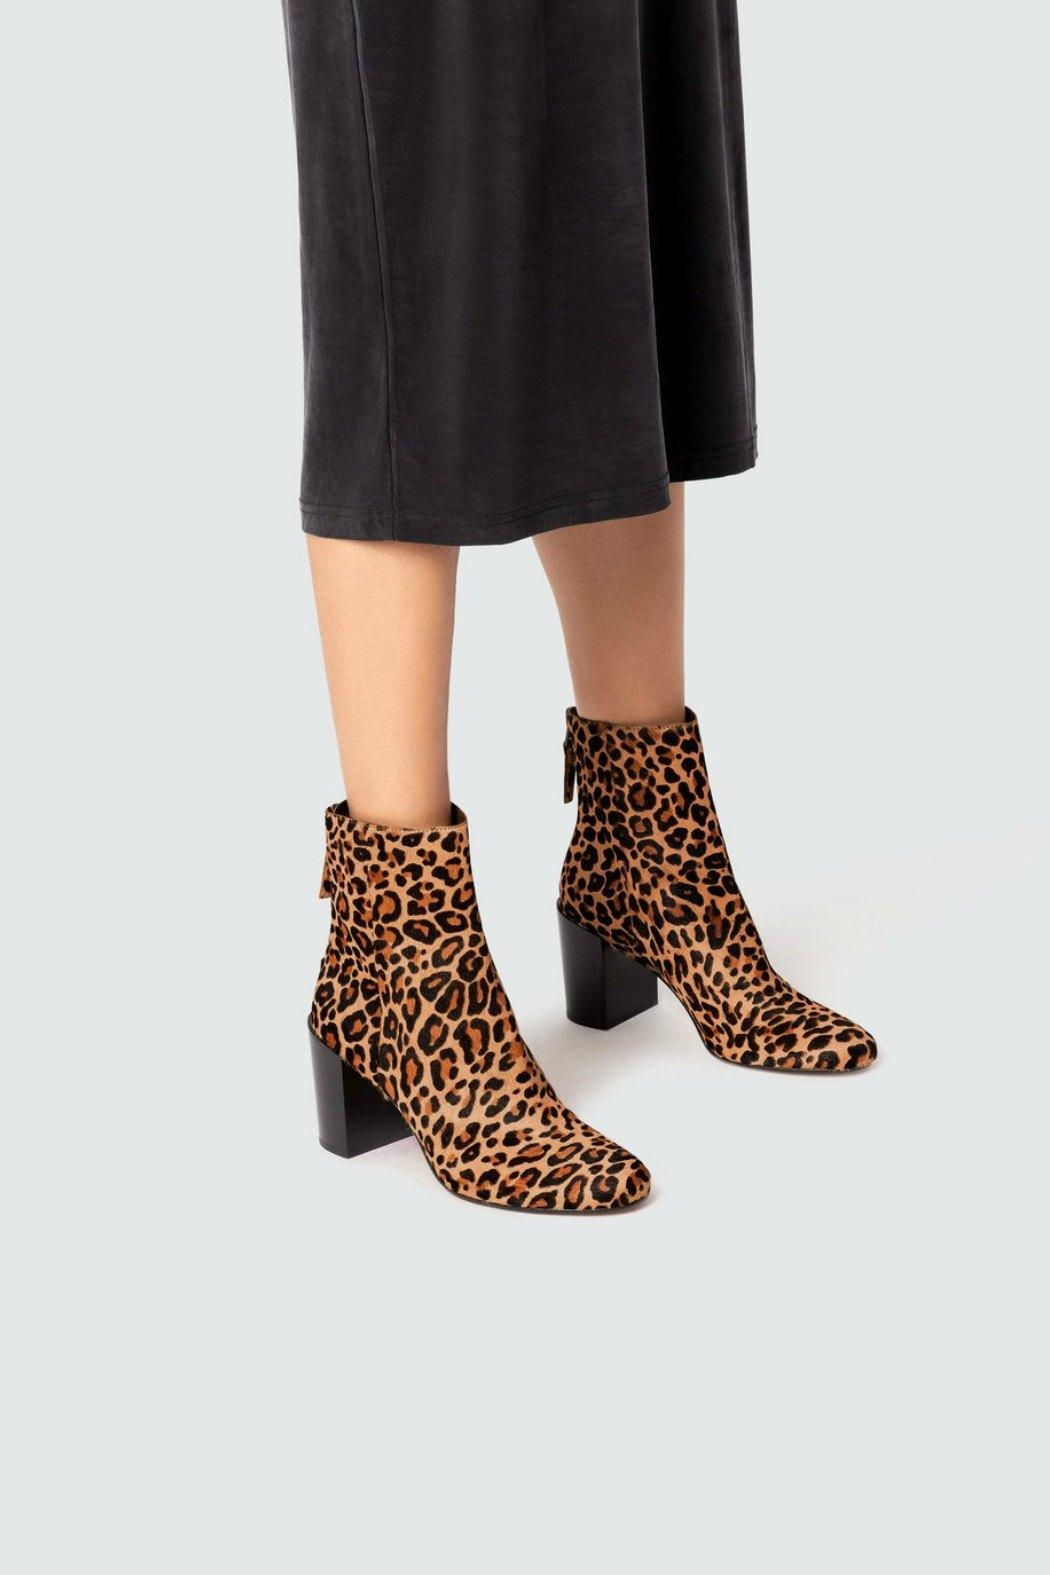 Dolce Vita Cyan Leopard-Calf Boots - Front Full Image